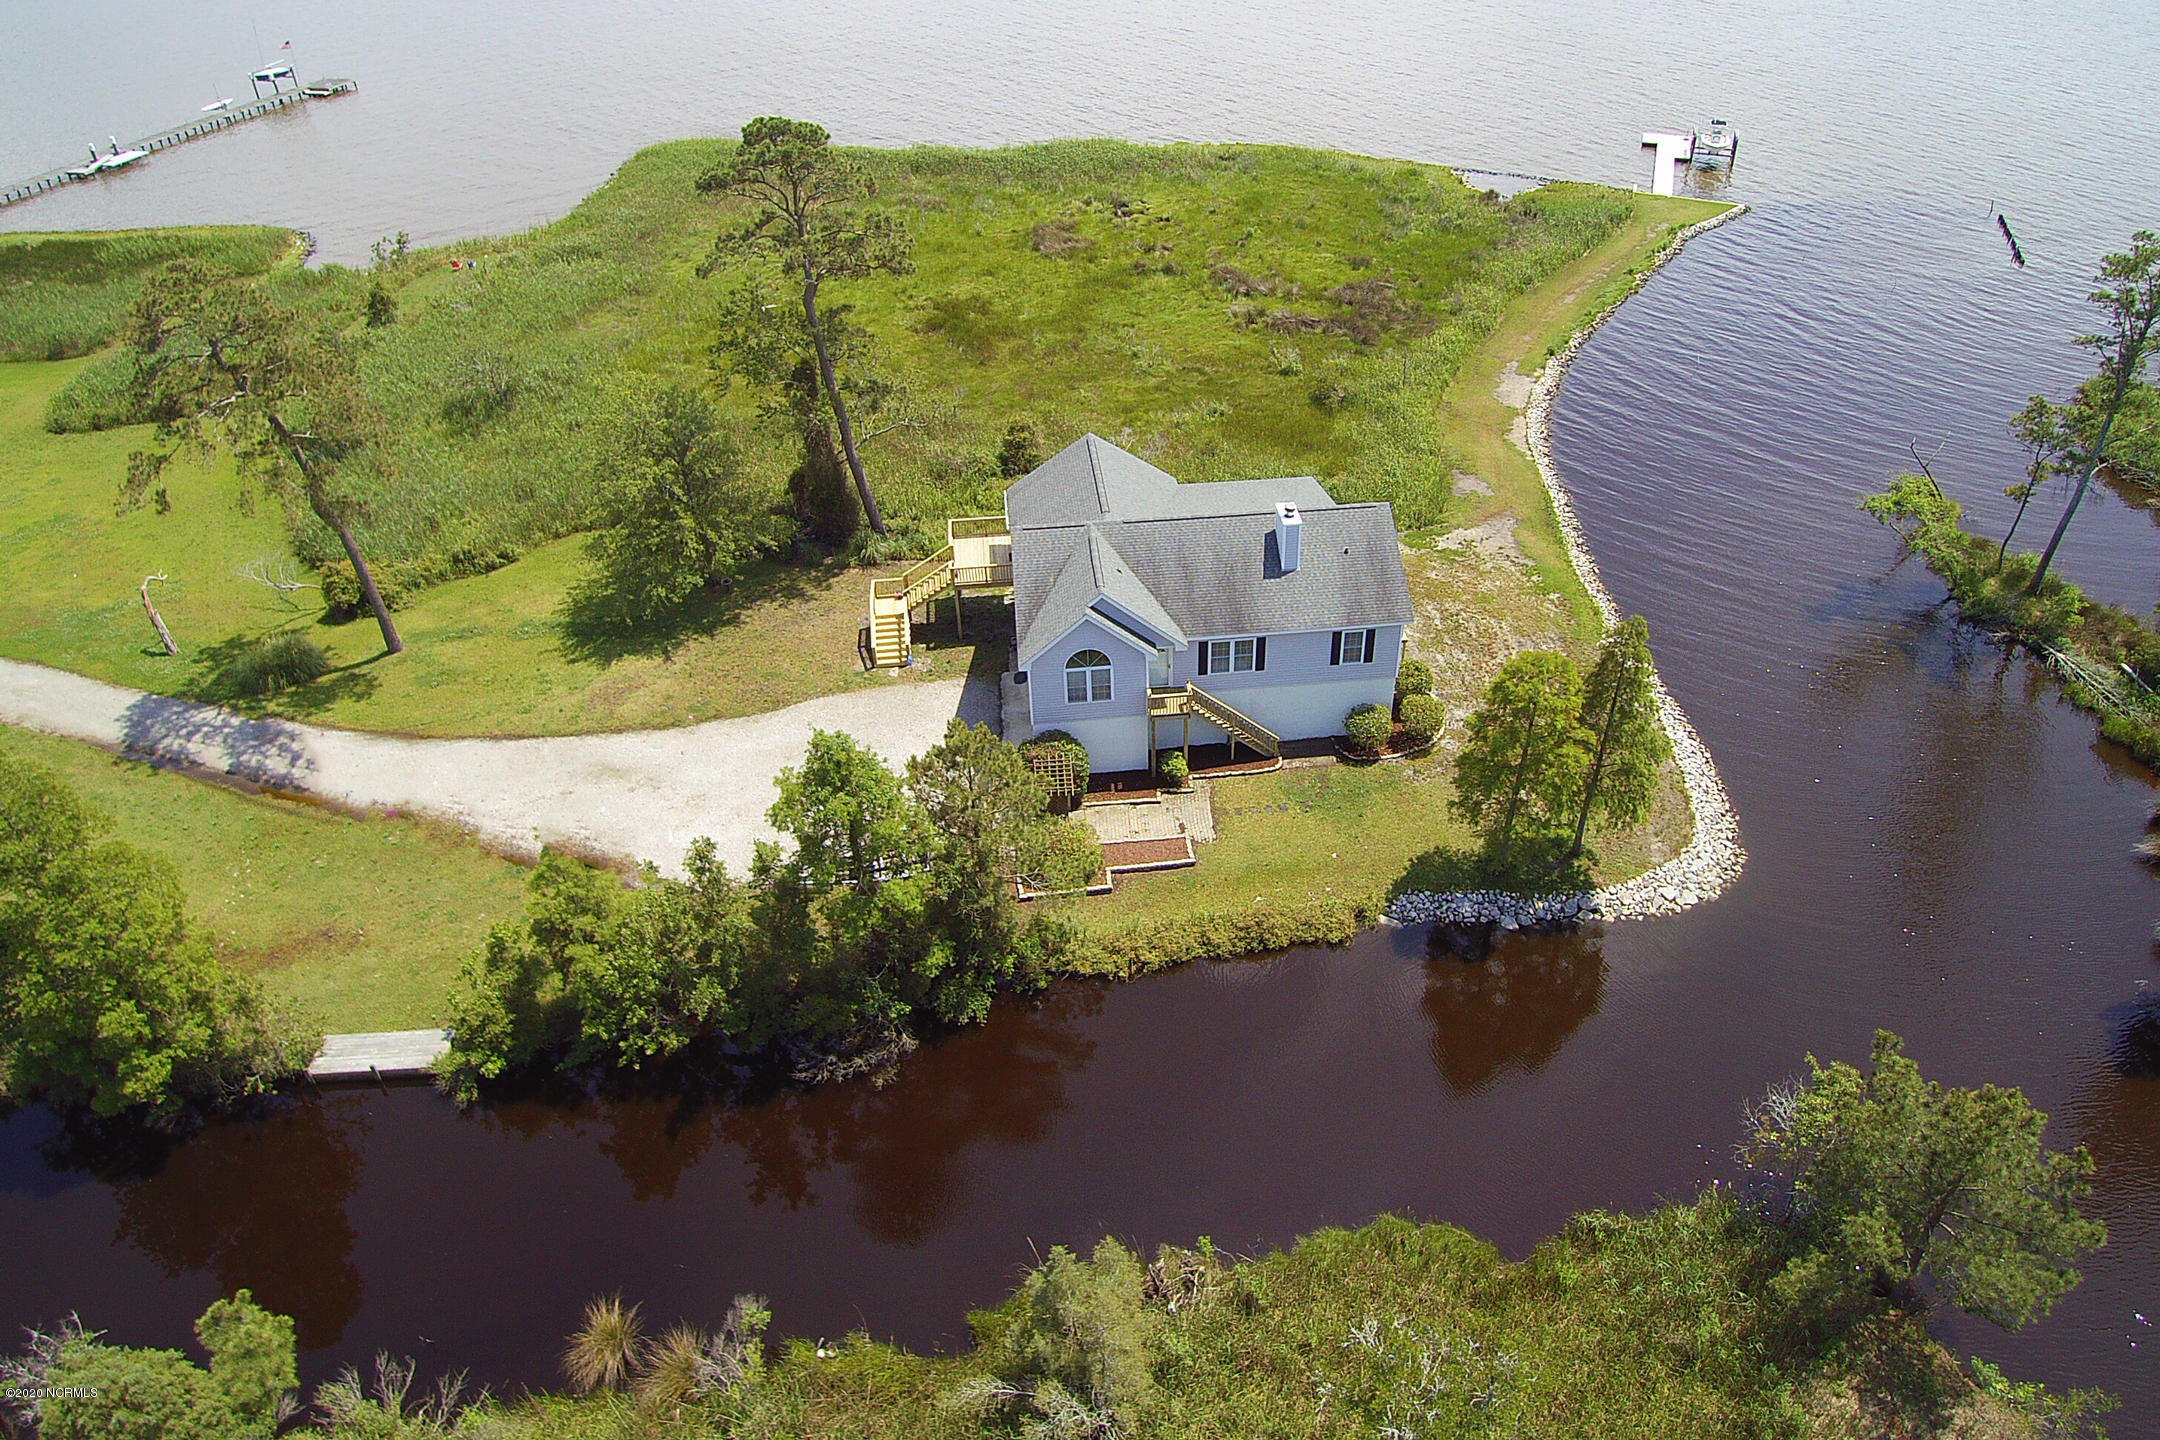 975 Wide Waters Drive, Bath, North Carolina 27808, 3 Bedrooms Bedrooms, 7 Rooms Rooms,2 BathroomsBathrooms,Single family residence,For sale,Wide Waters,100218483